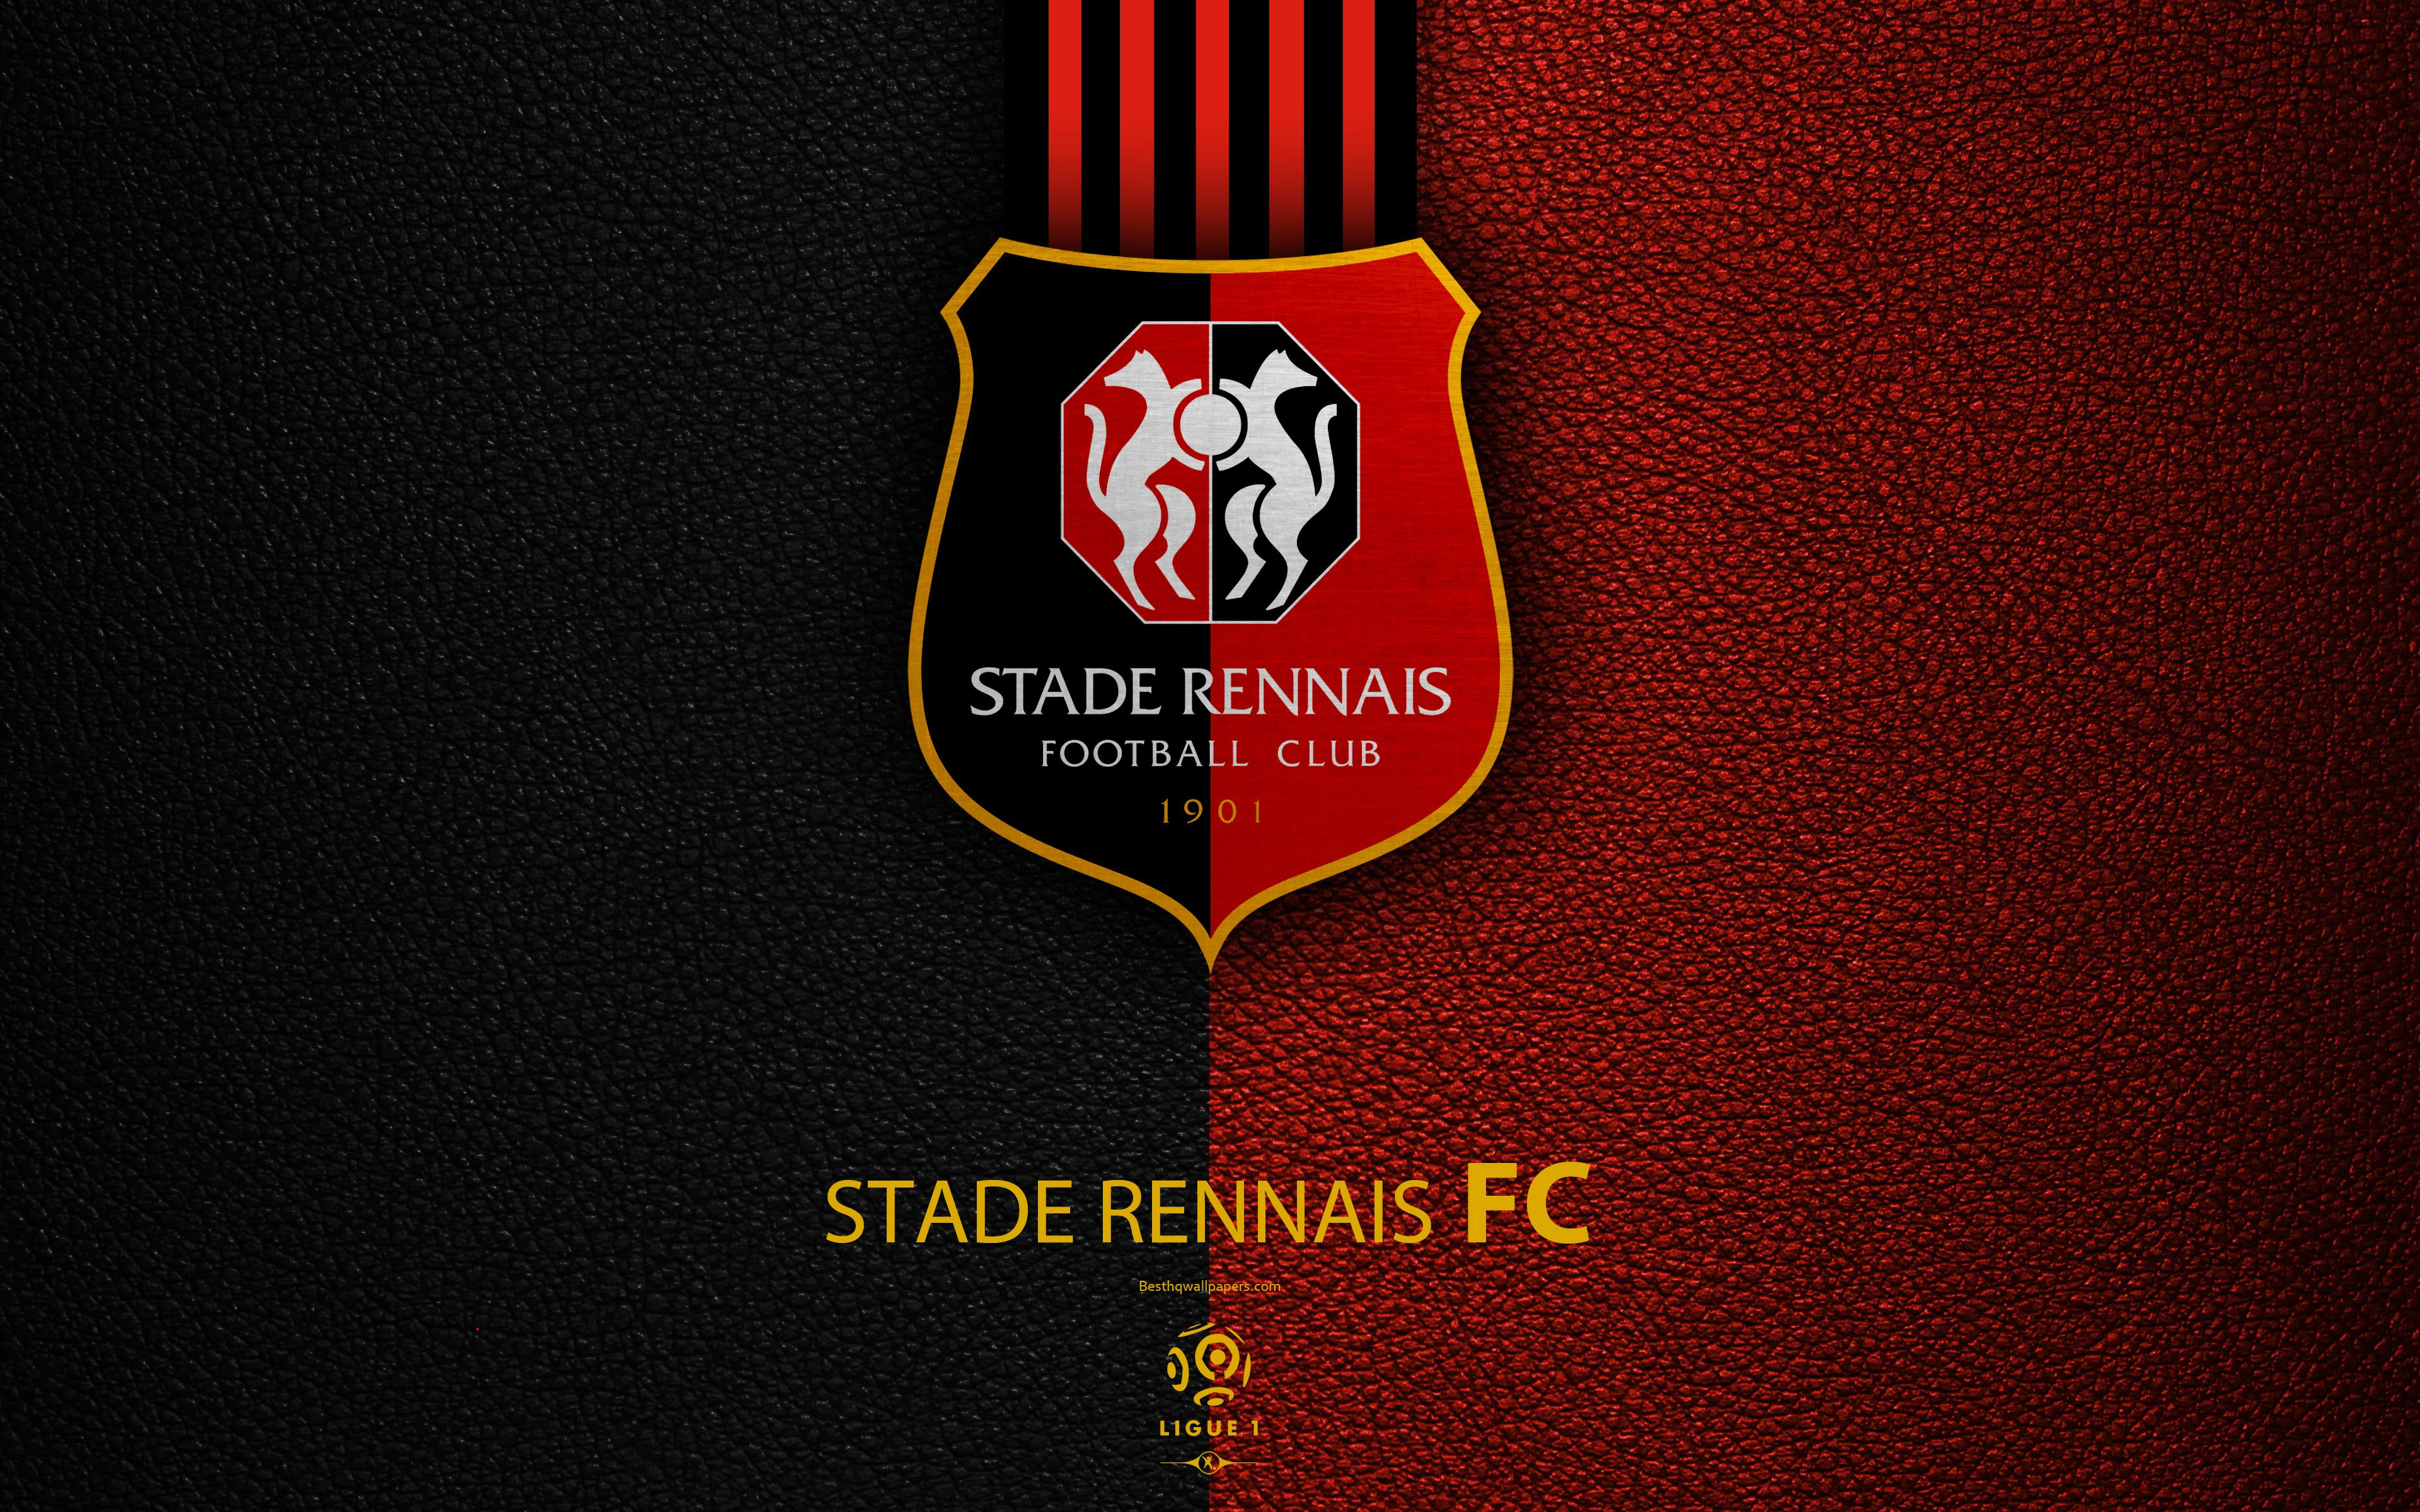 Download wallpapers Stade Rennais FC, 4K, French football club